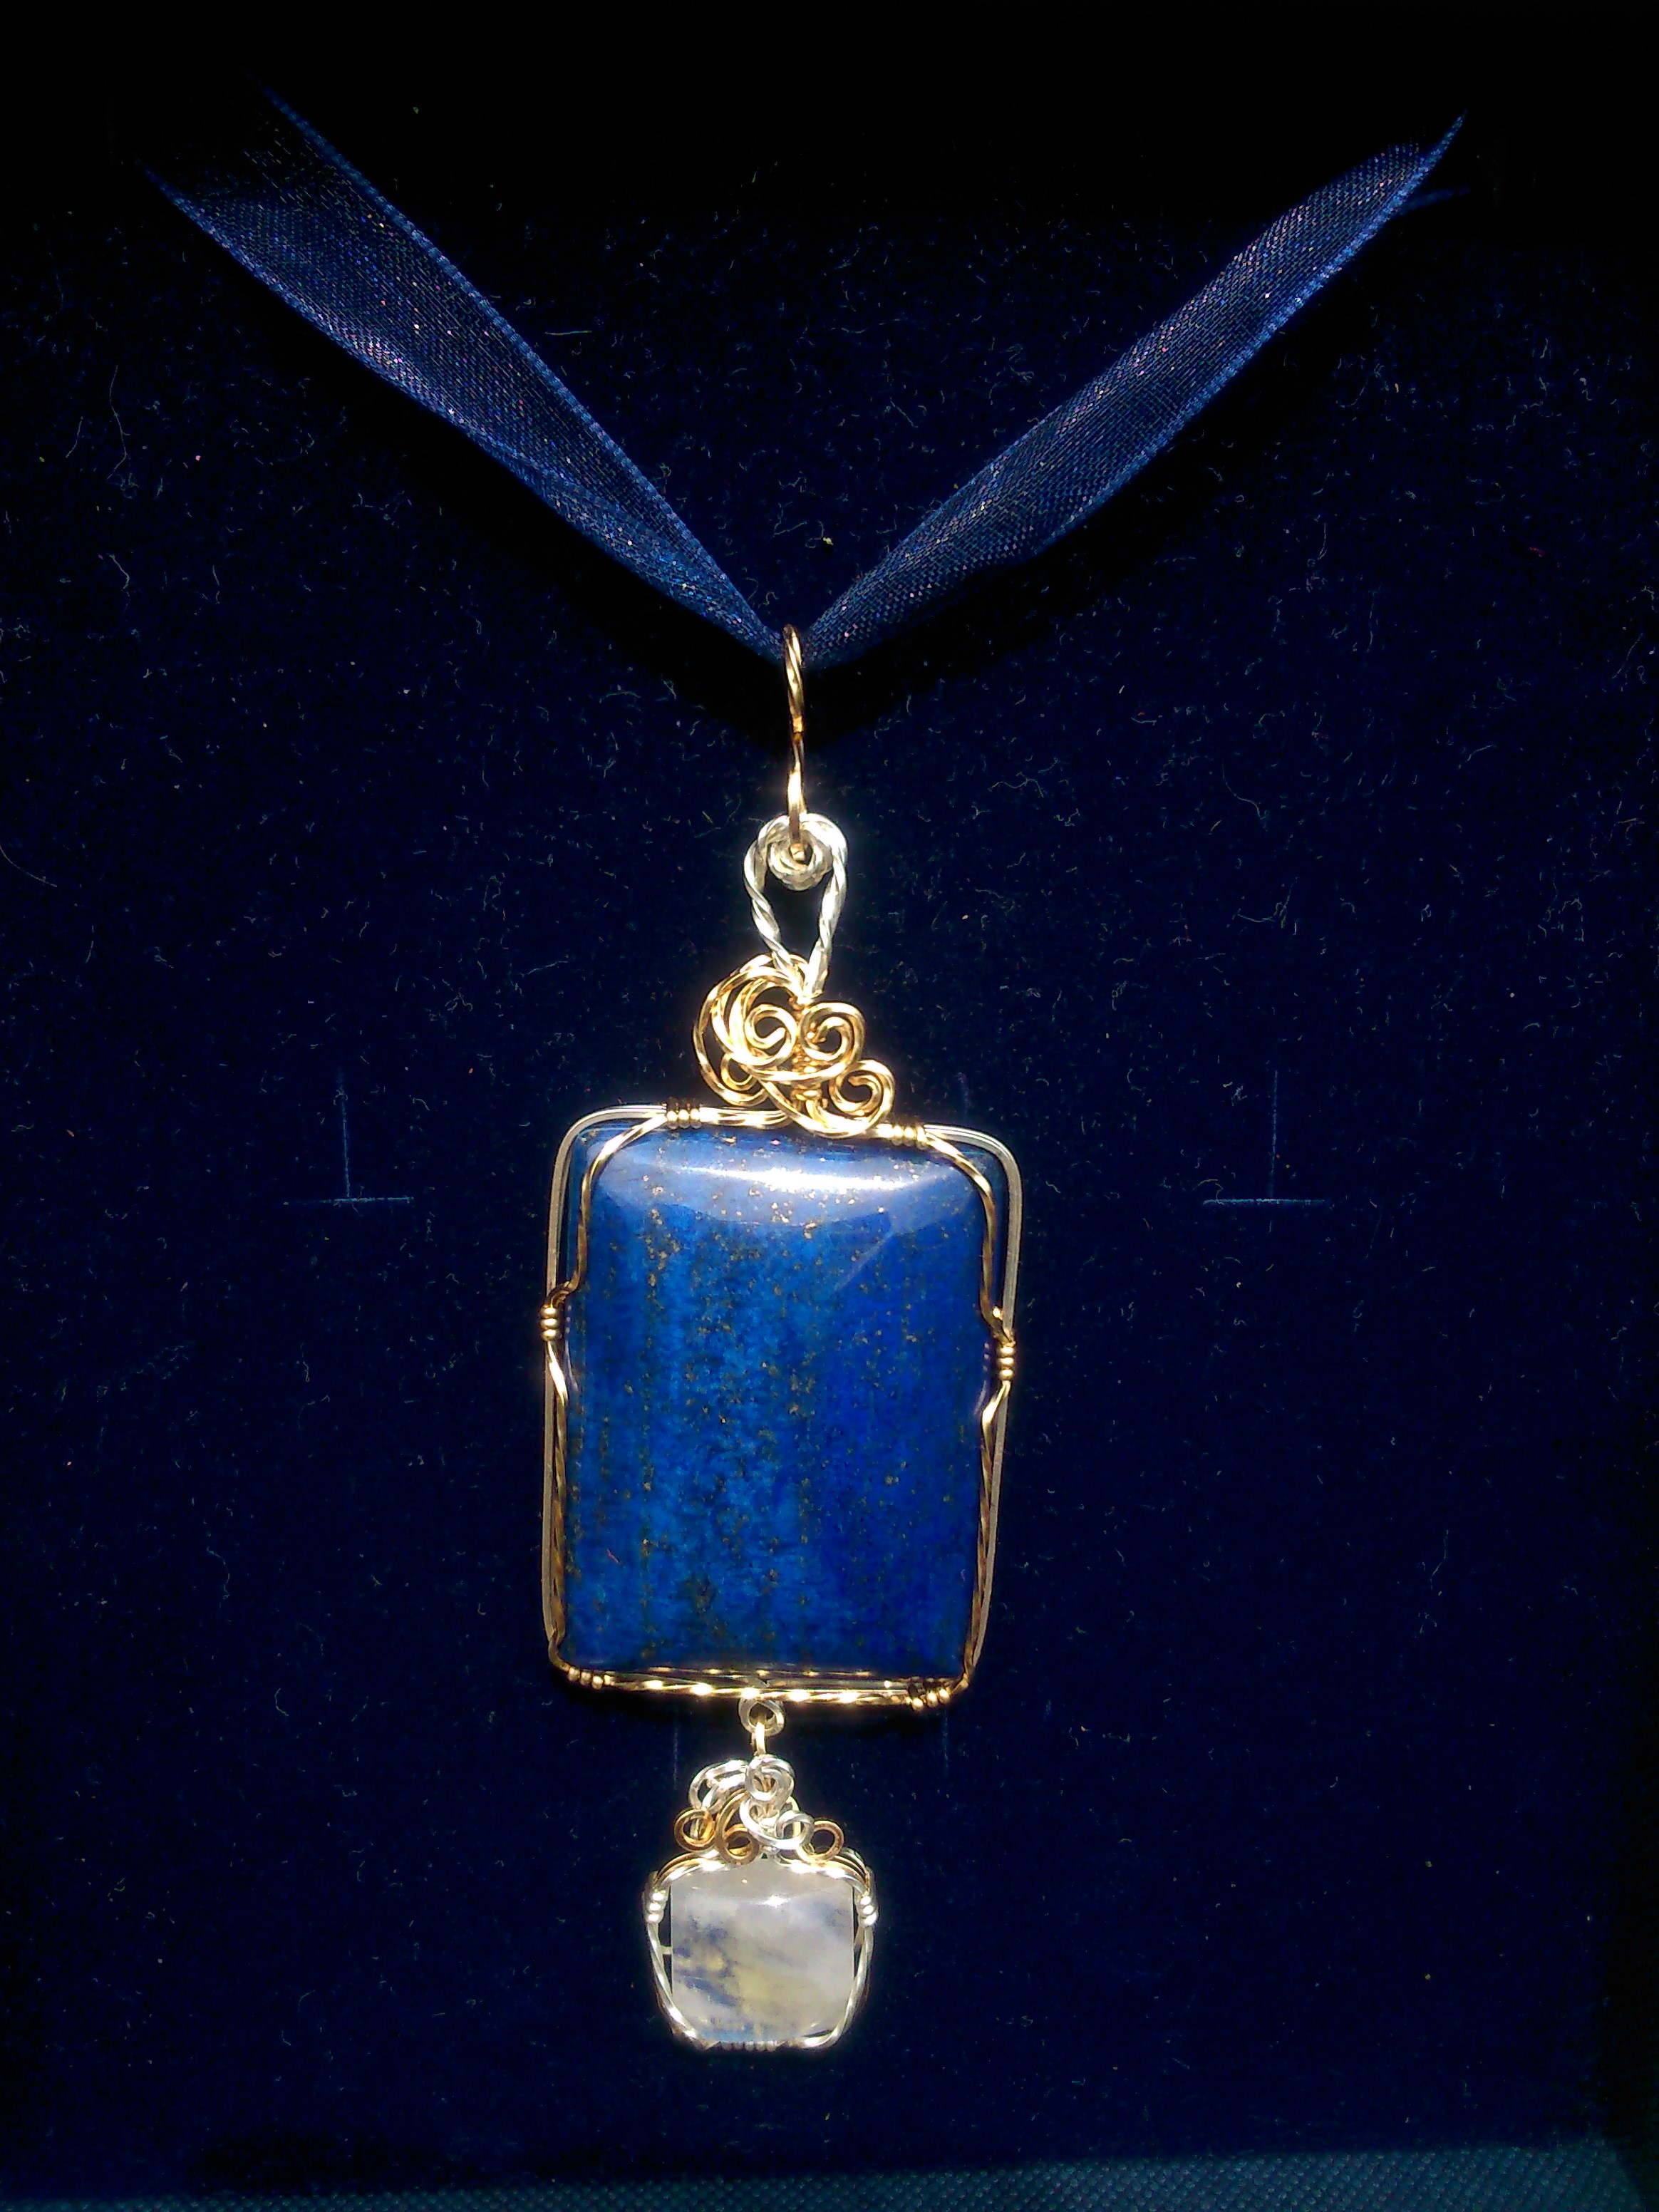 image showing Lapis Lazuli and Moonstone necklace.